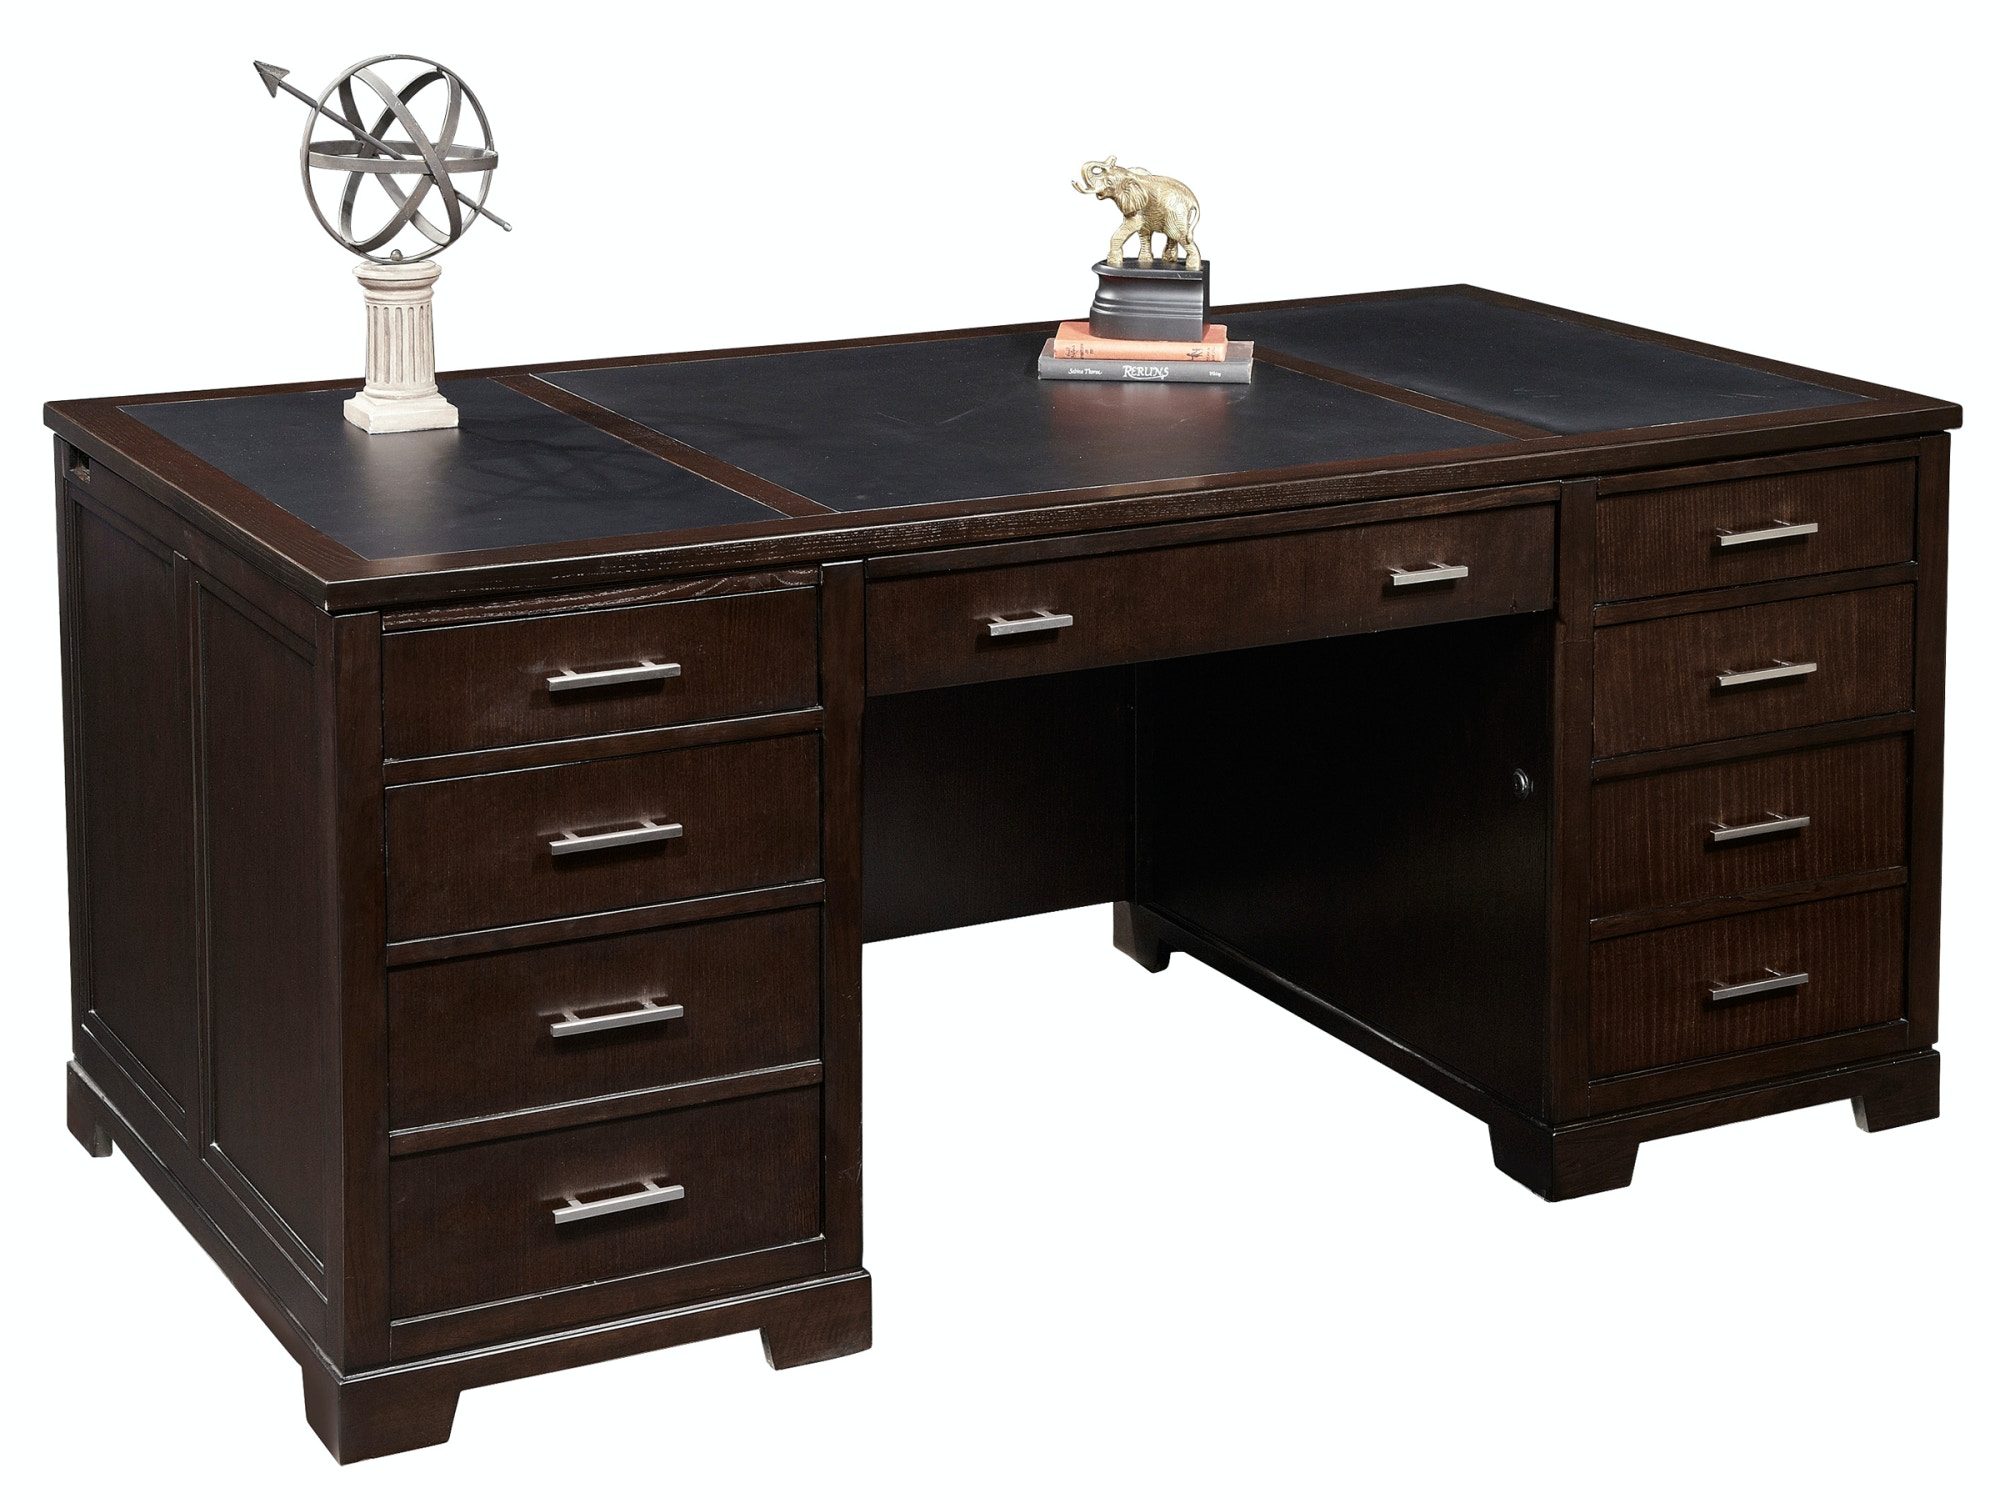 Great Hekman Furniture Home Office Executive Desk Executive Desk Hekman Furniture  7 9180